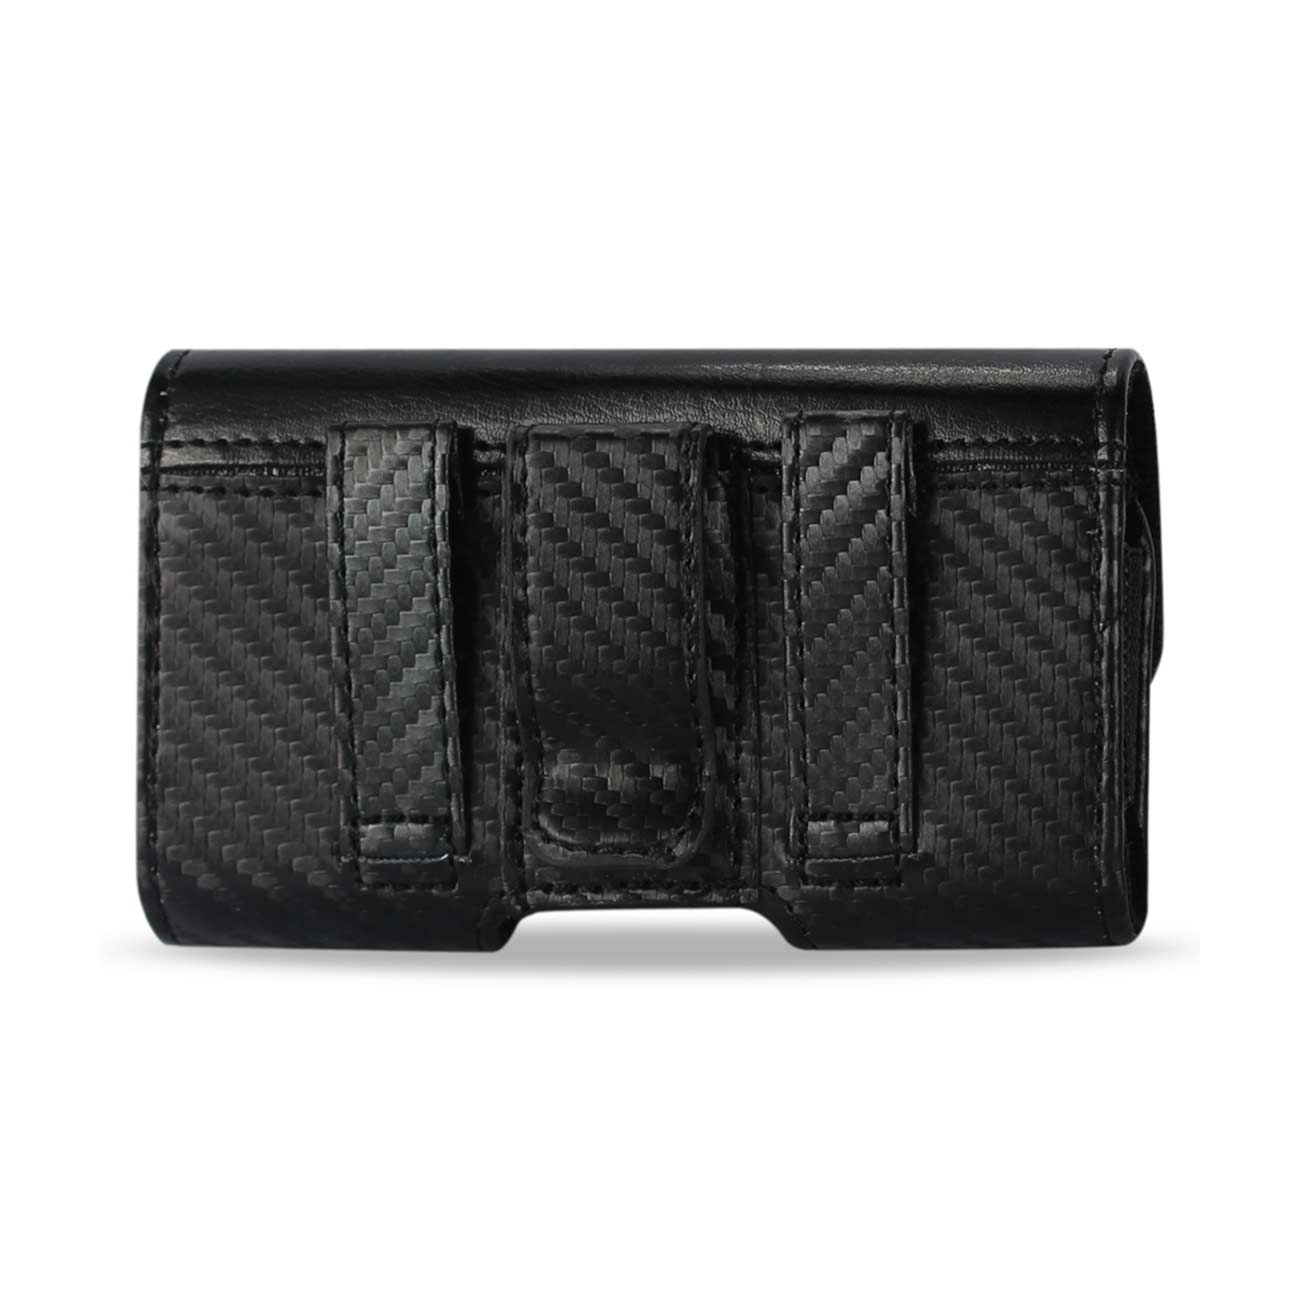 HORIZONTAL Z LID POUCH MAT PATTERN WITH ELASTIC SIDES IPHONE4 IN BLACK (4.72X2.56X0.59 INCHES PLUS)  ORIGINAL NAEM:HP121B-IPHONE4PLBK